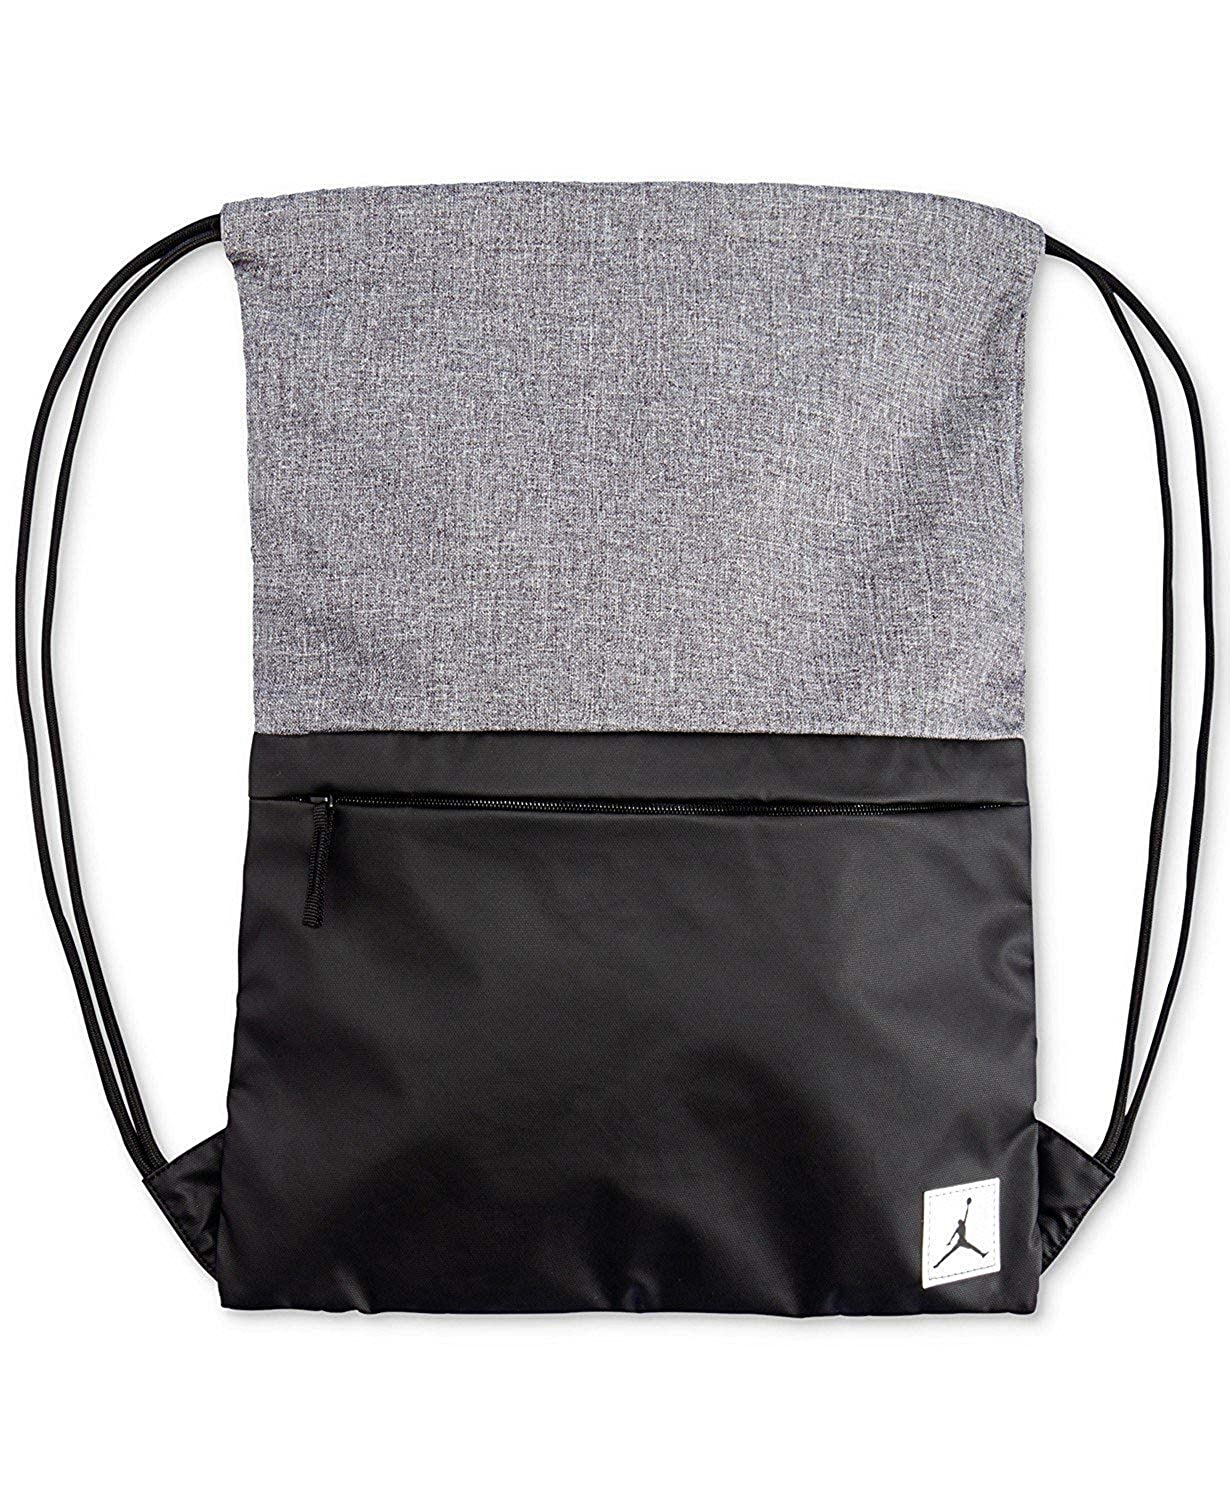 da2166817a5a ... 100% top quality 27cc0 1a48a Amazon.com Jordan Big Boys Pivot  Drawstring Sack Bag